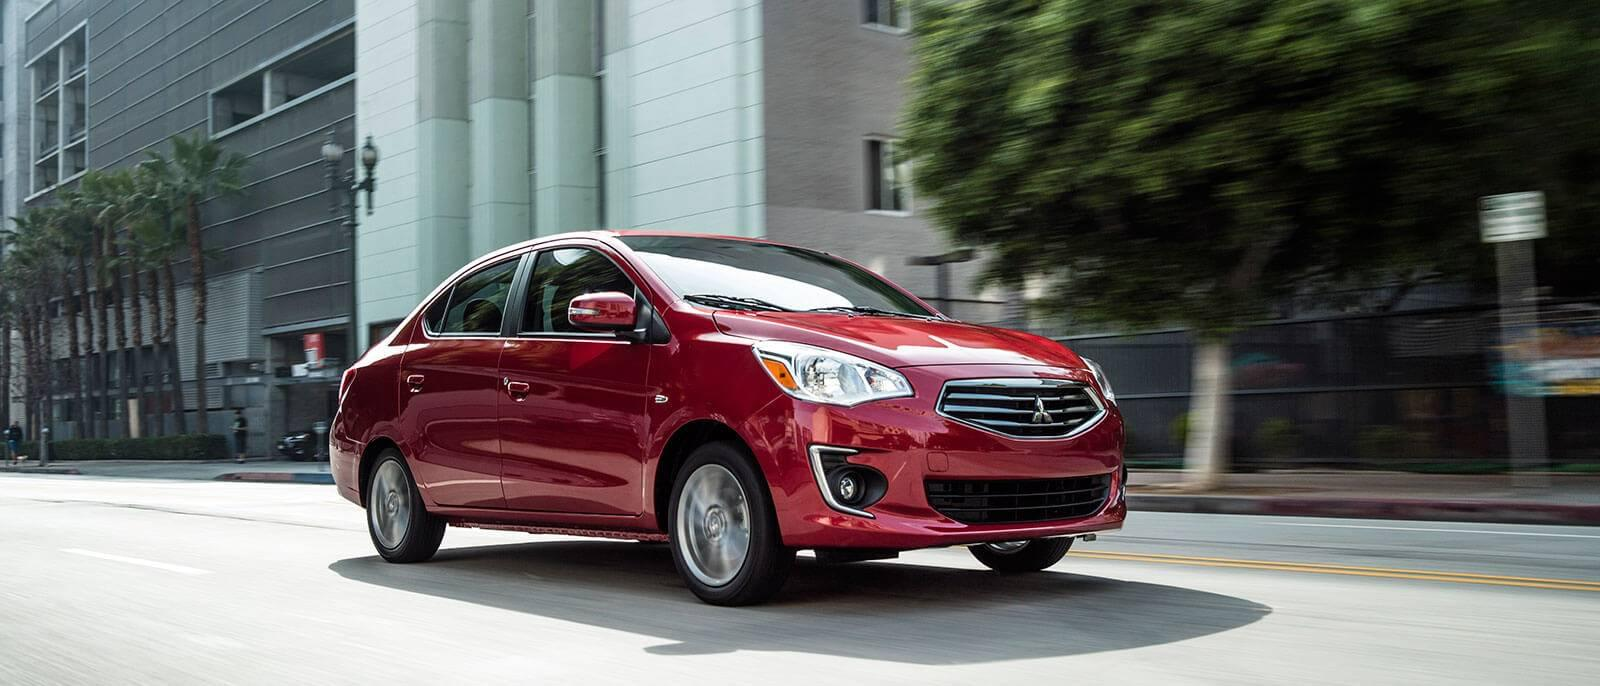 2017 Mitsubishi Mirage in red, driving through the ciyt